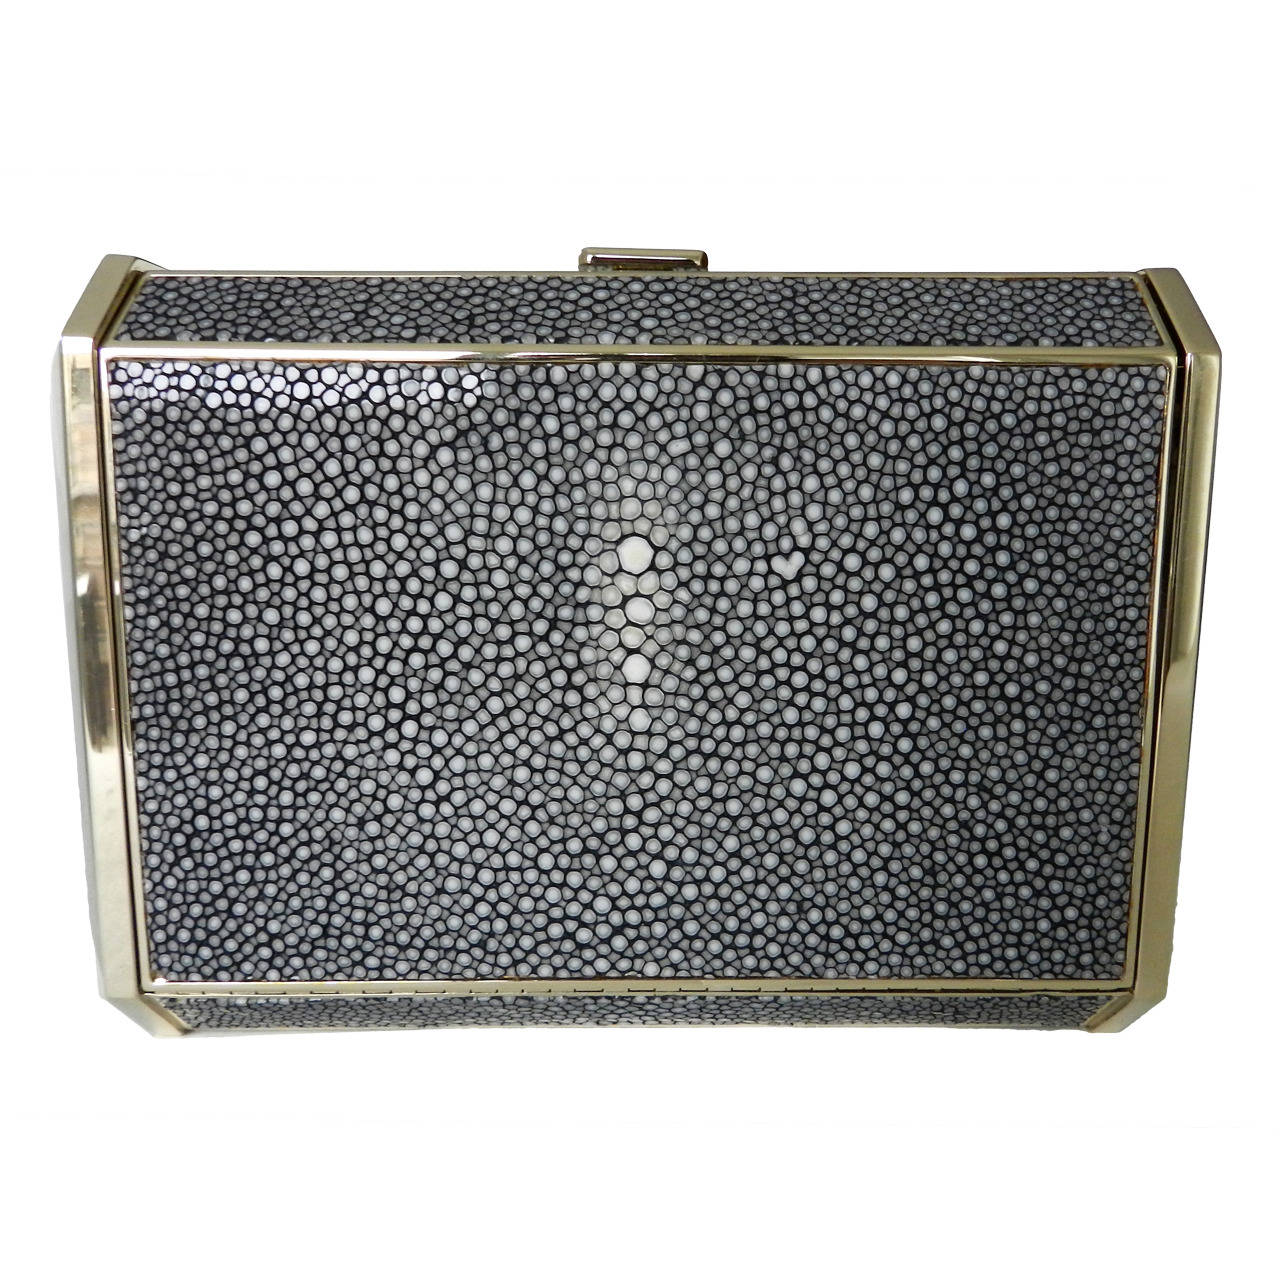 Lanvin Stingray And Resin Box Clutch Bag For